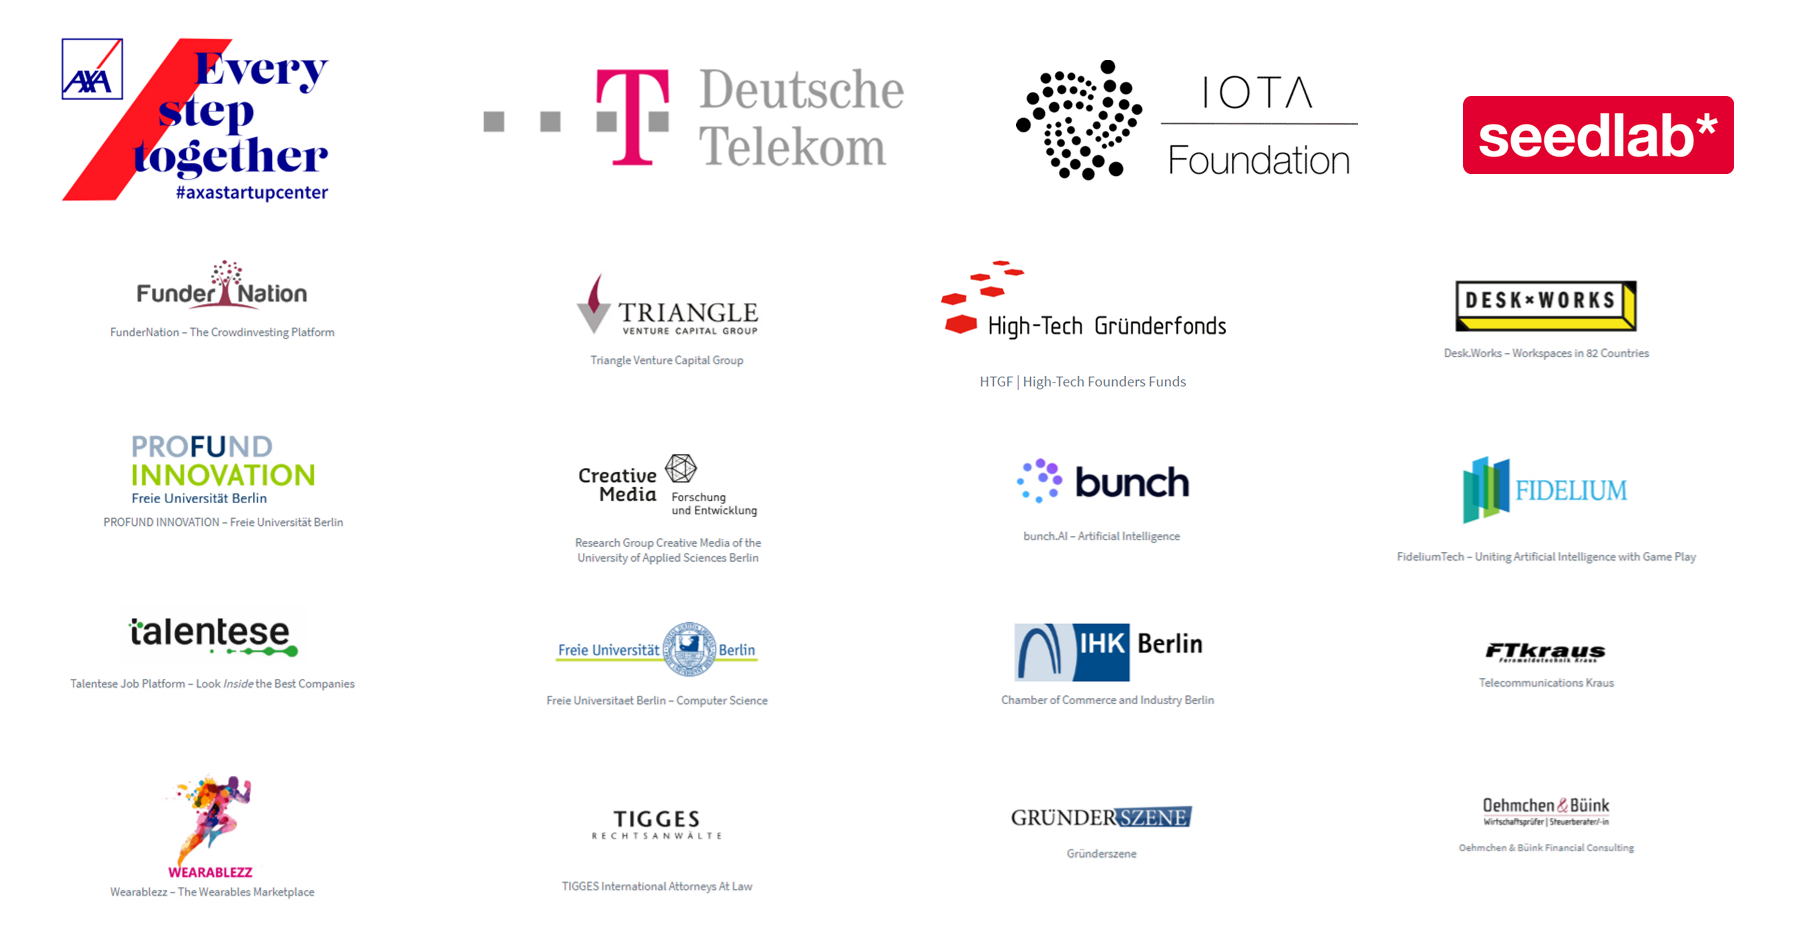 TOUCHING INNOVATIONS 2019   Sponsors include...